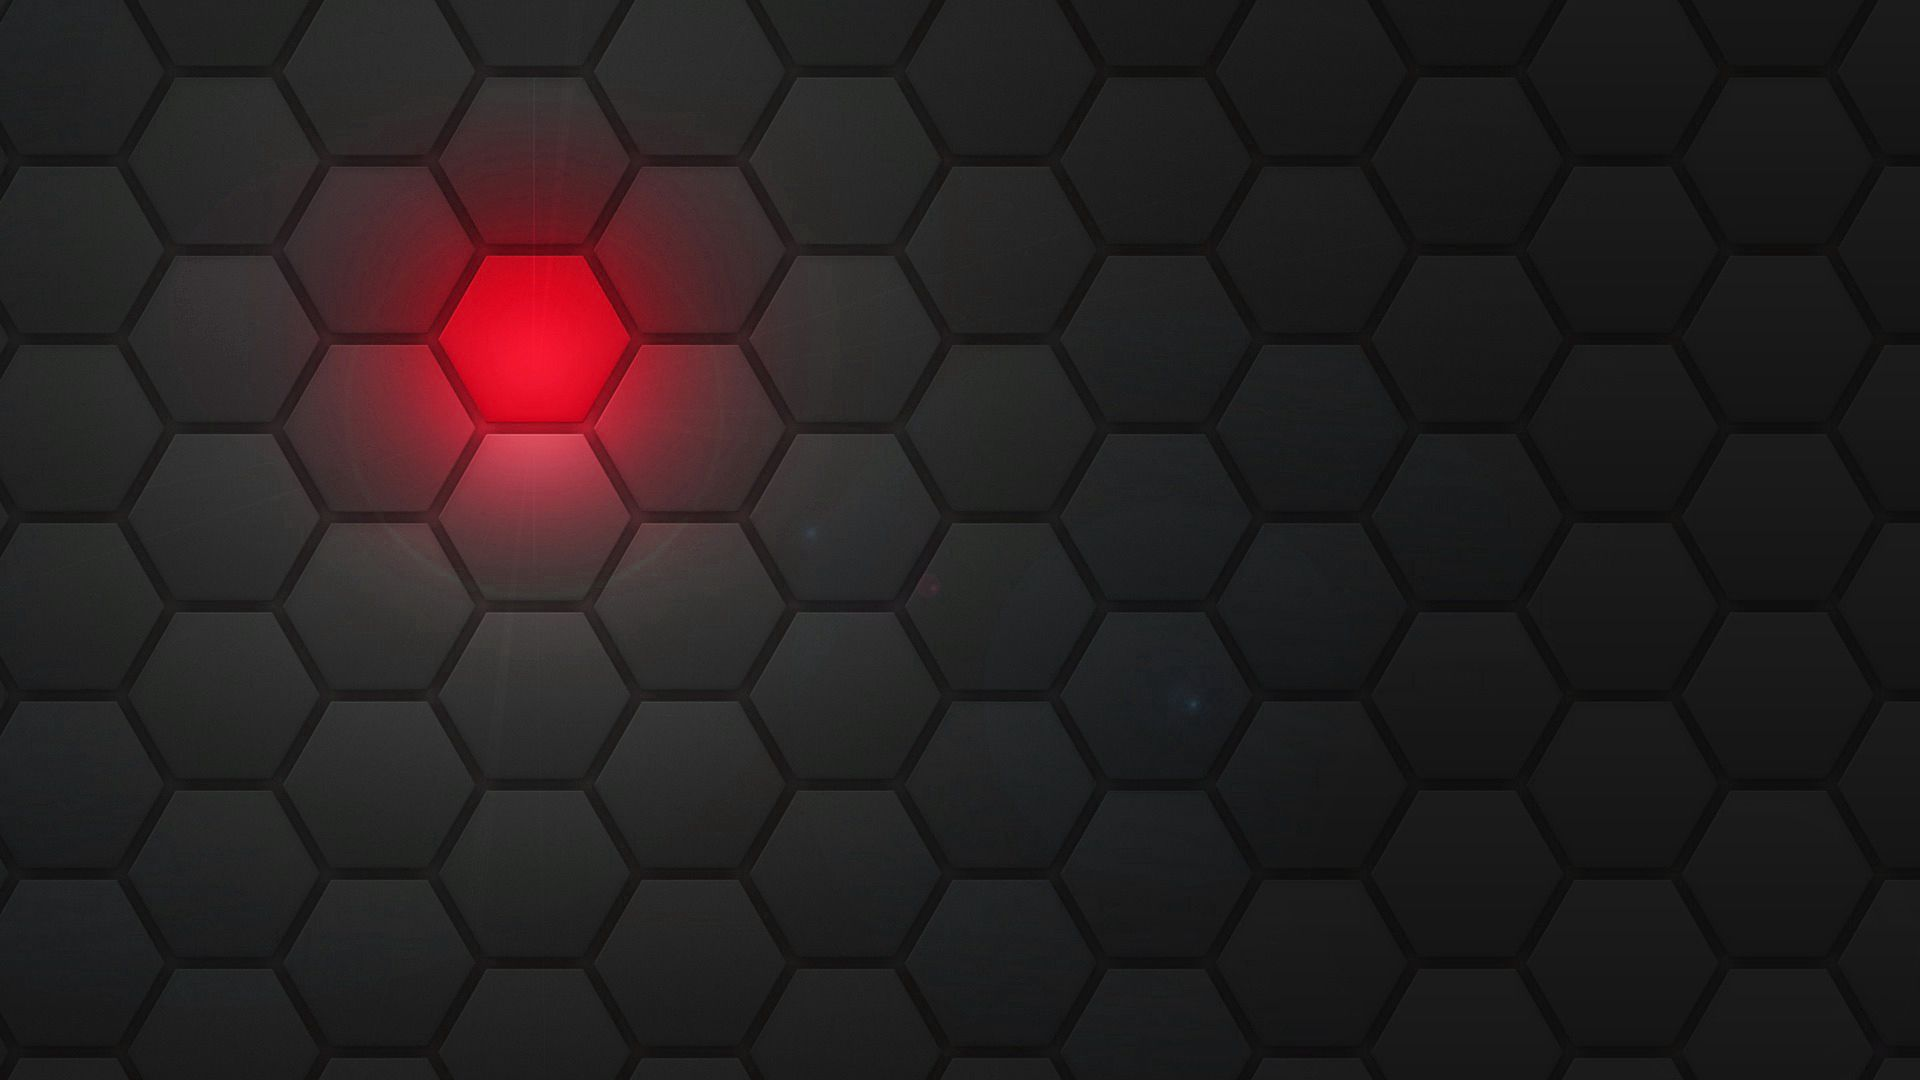 131470 download wallpaper Abstract, Grid, Hexagons, Hexagonals, Shine, Light, Shadow screensavers and pictures for free